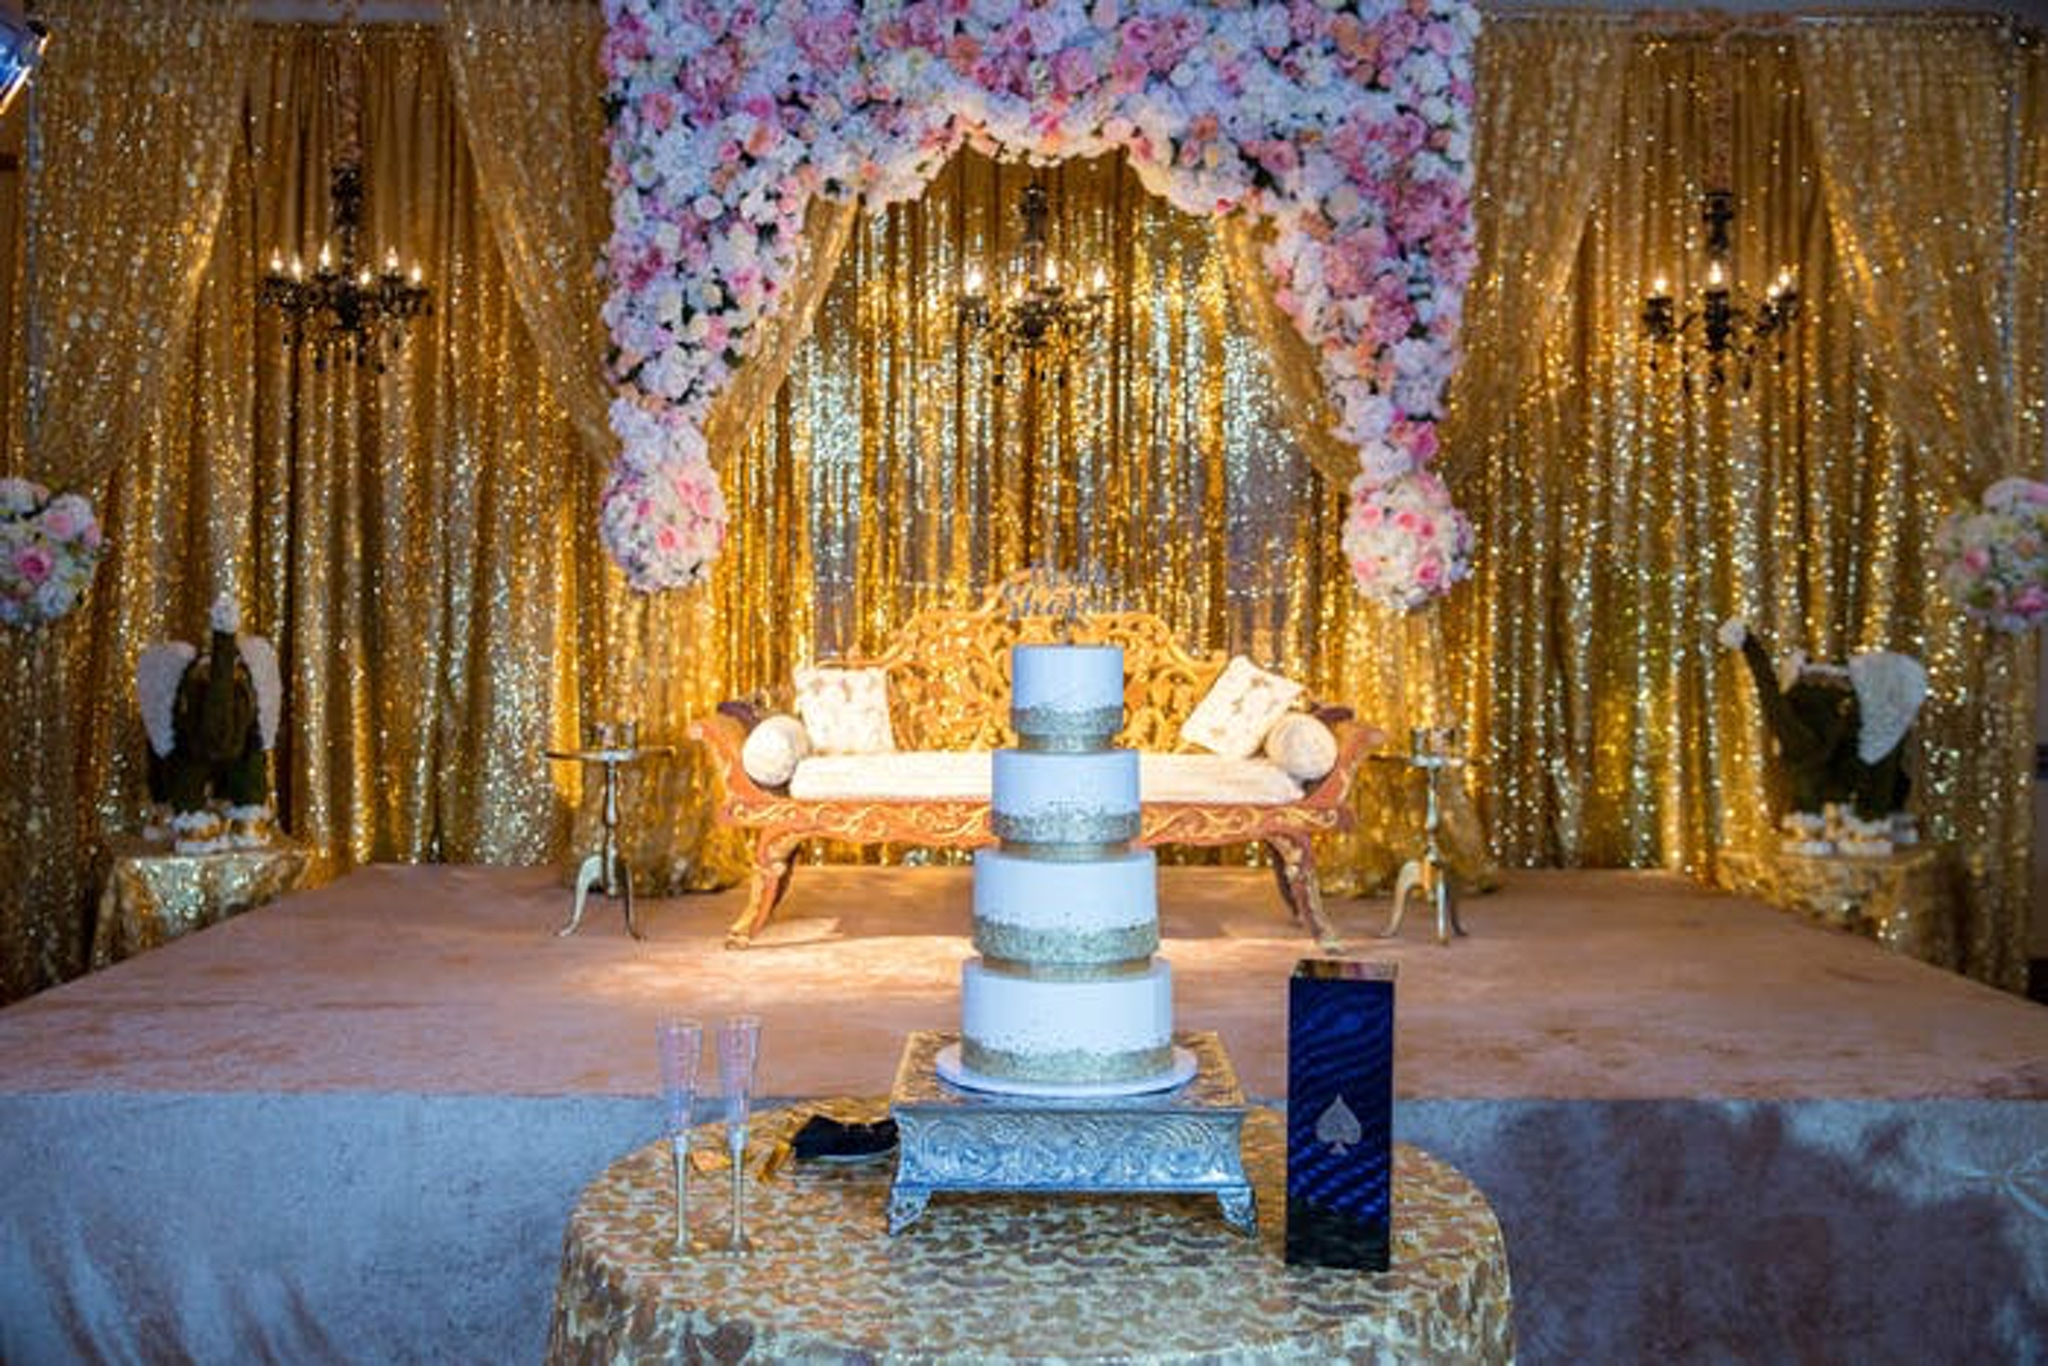 wedding cake surrounded by gold accents